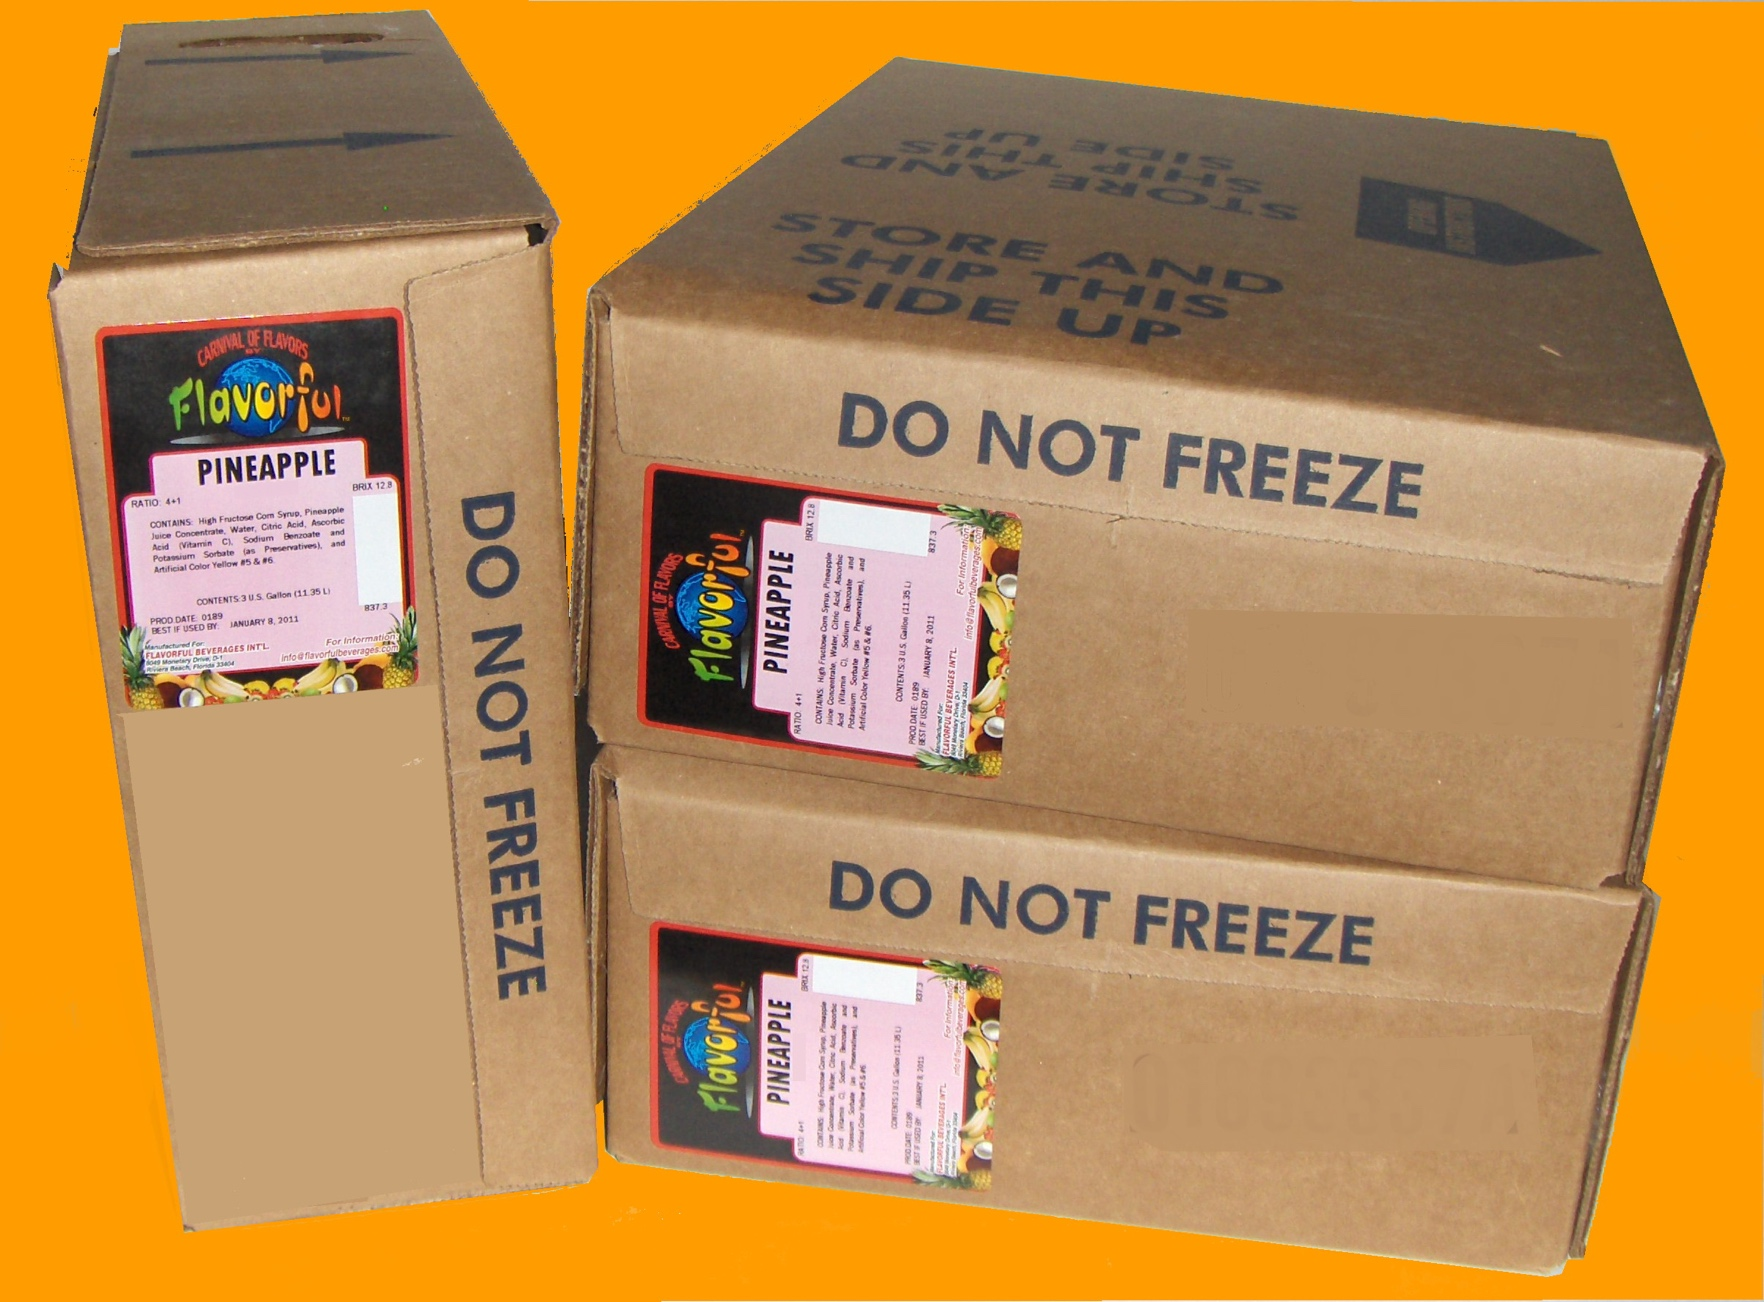 Boxes of Flavorful Beverage Products